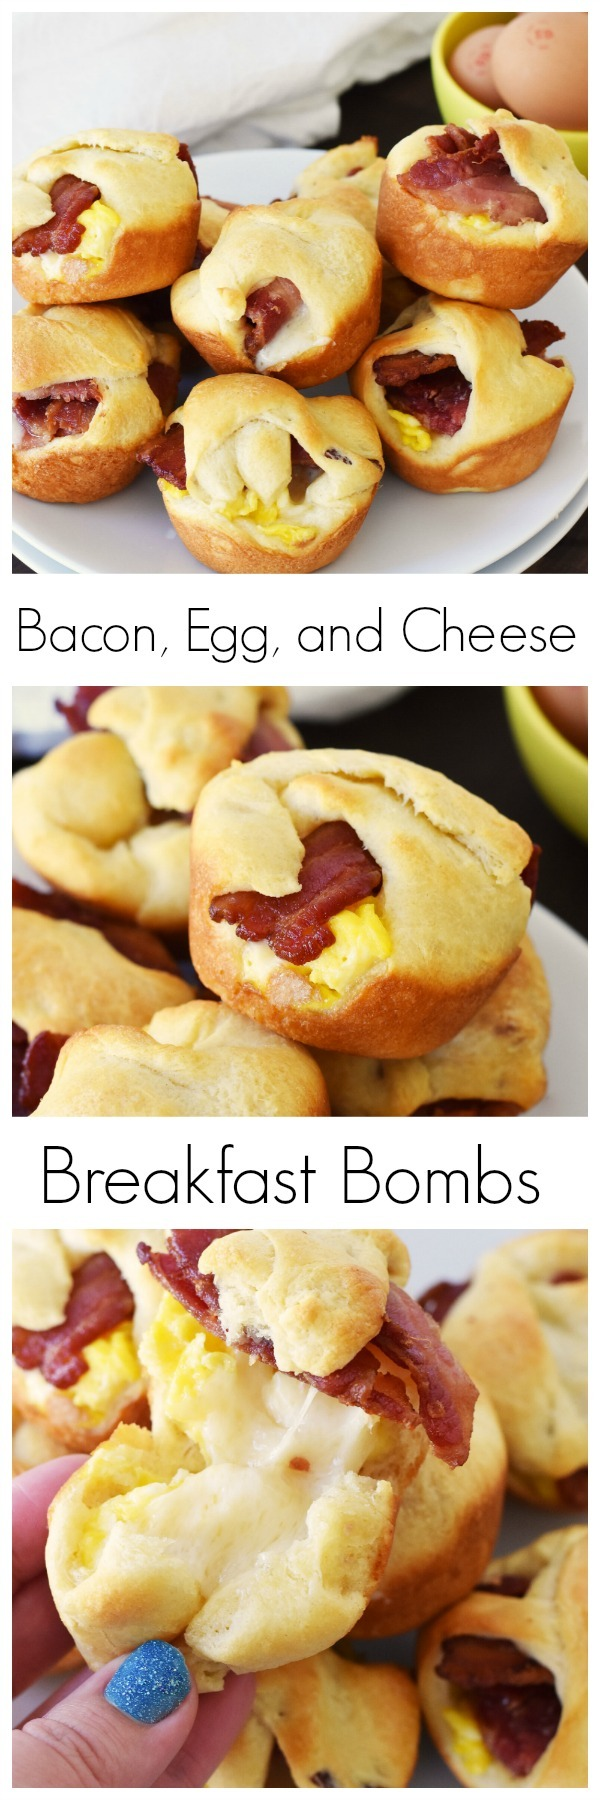 Bacon, Egg, Cheese, Breakfast Bombs